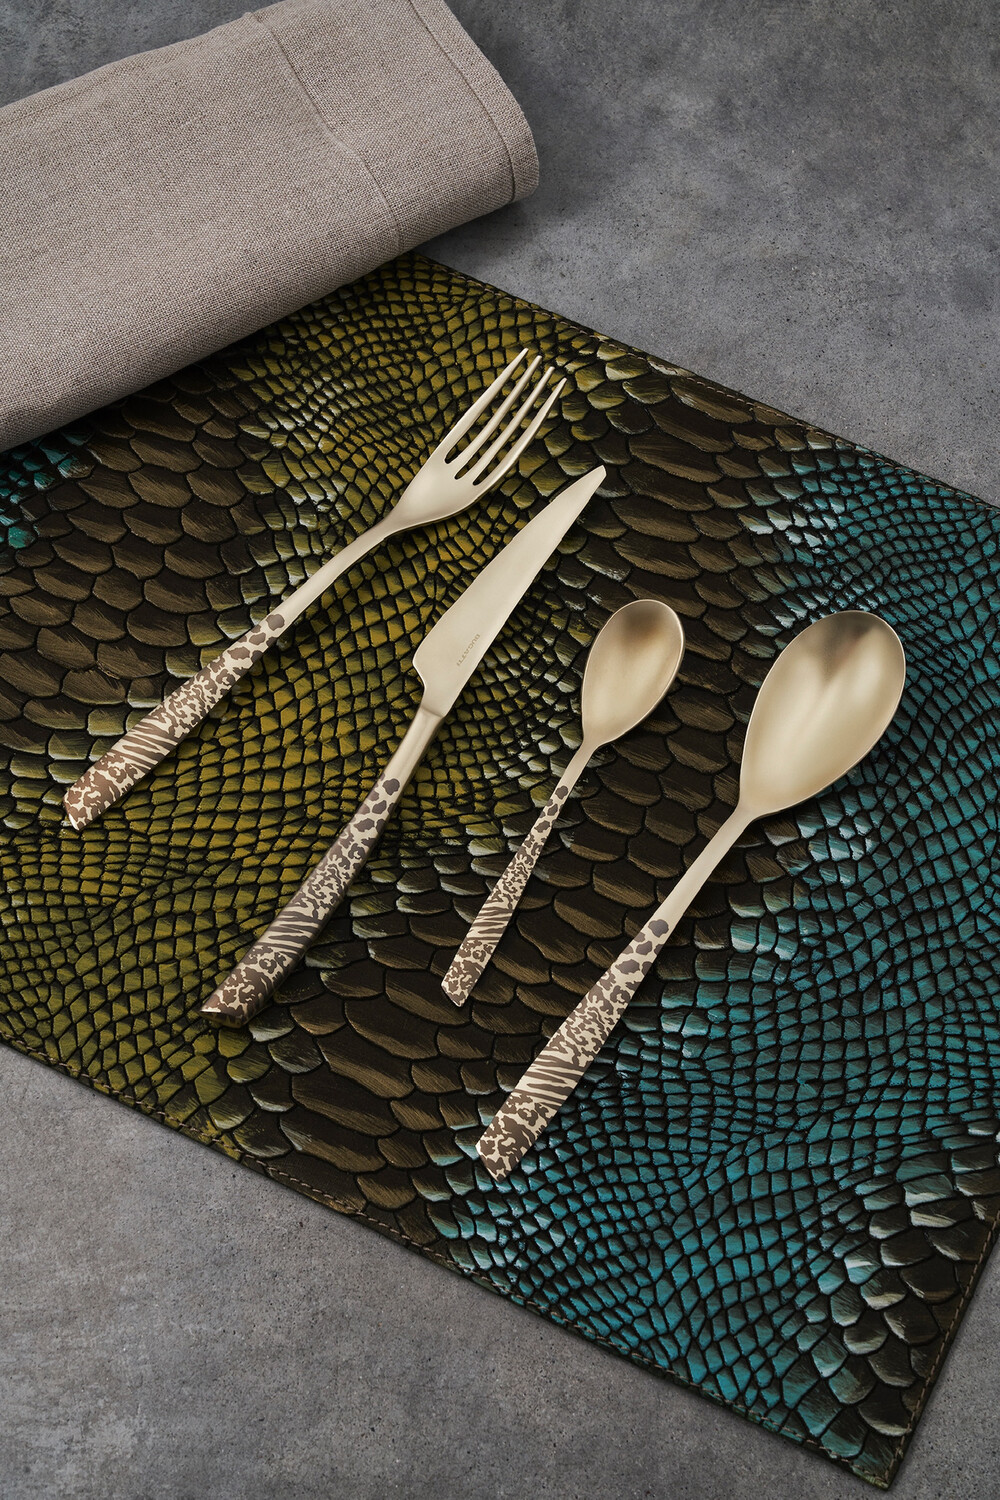 Riviera Animal Print Matte     5 Piece Place Setting